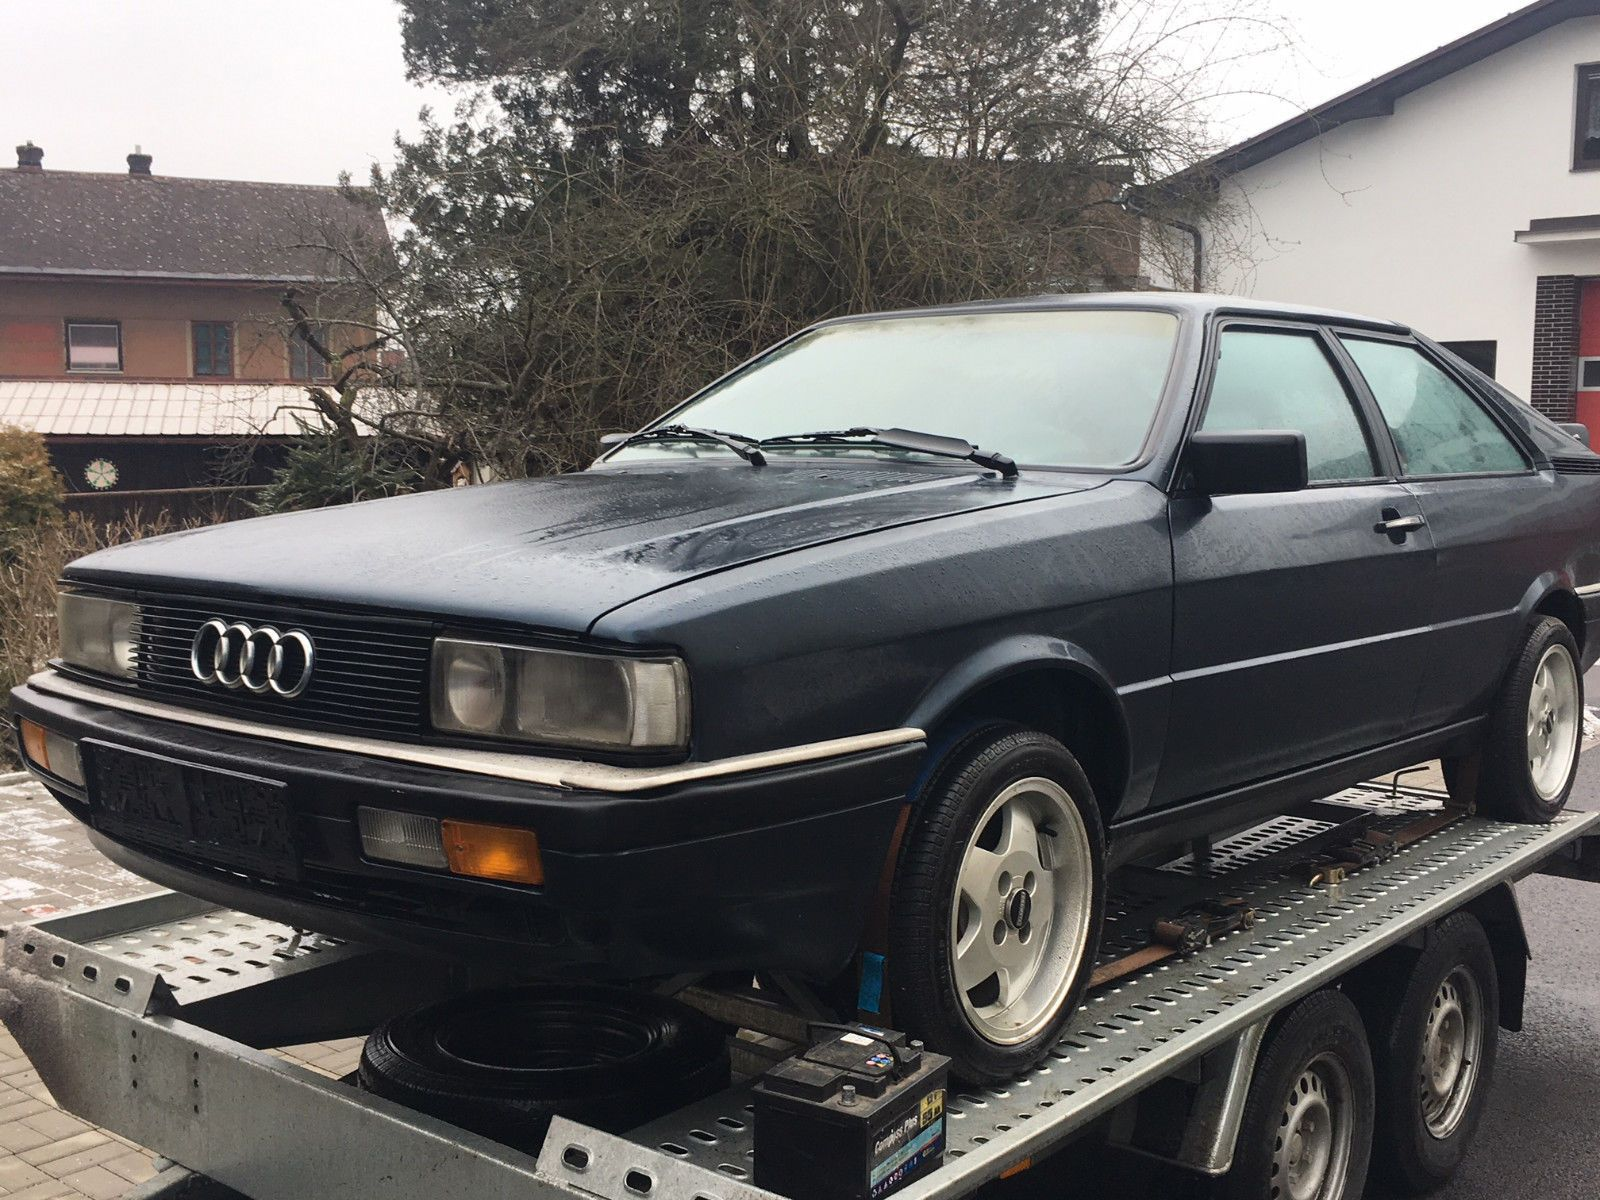 eBay: Audi Coupe GT type 81/85 engine + 5 speed gearbox #classiccars ...